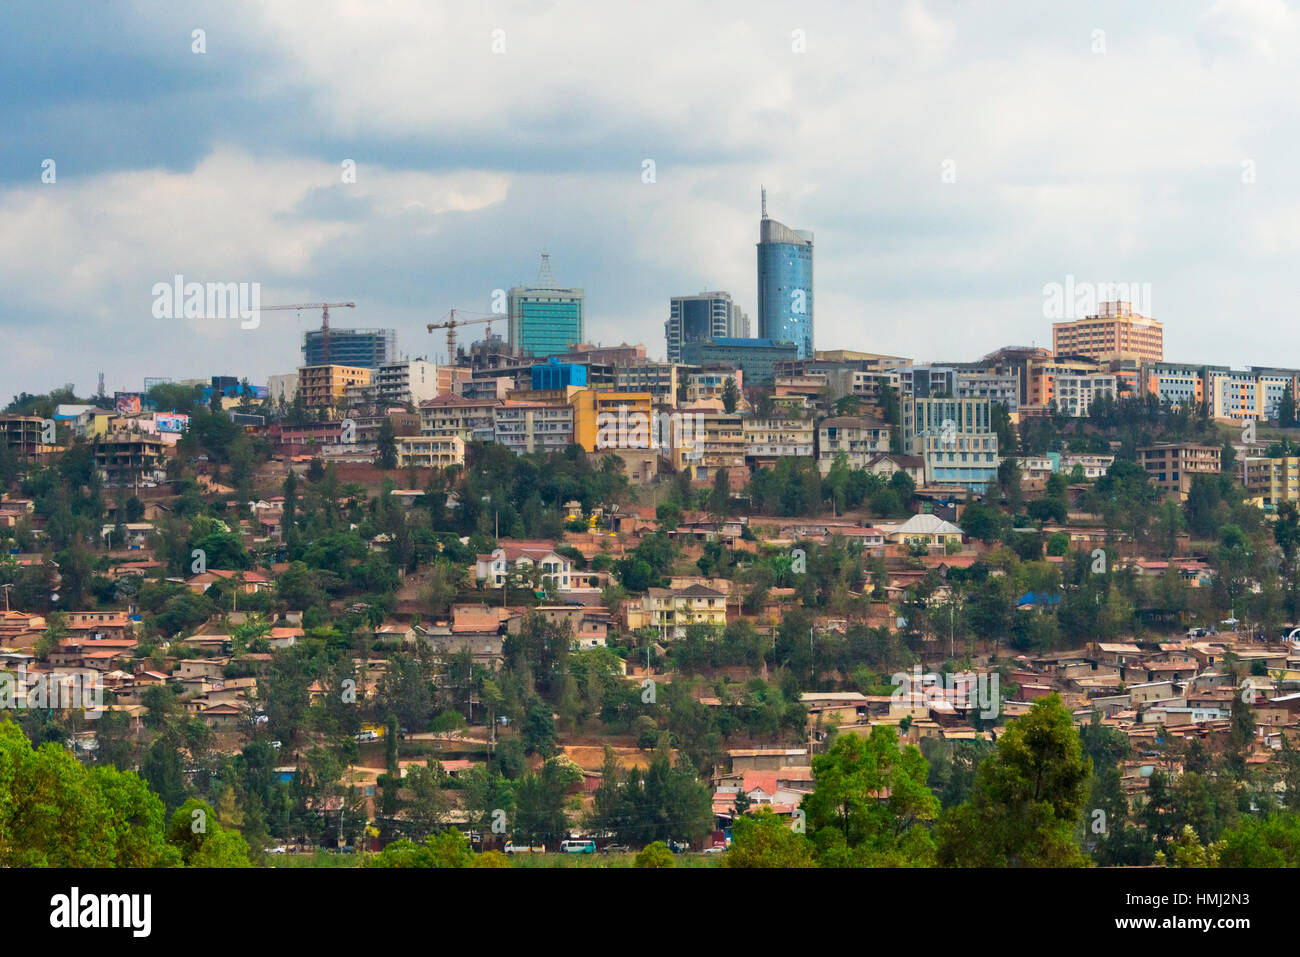 Cranes and high rises in downtown, Kigali, Rwanda - Stock Image